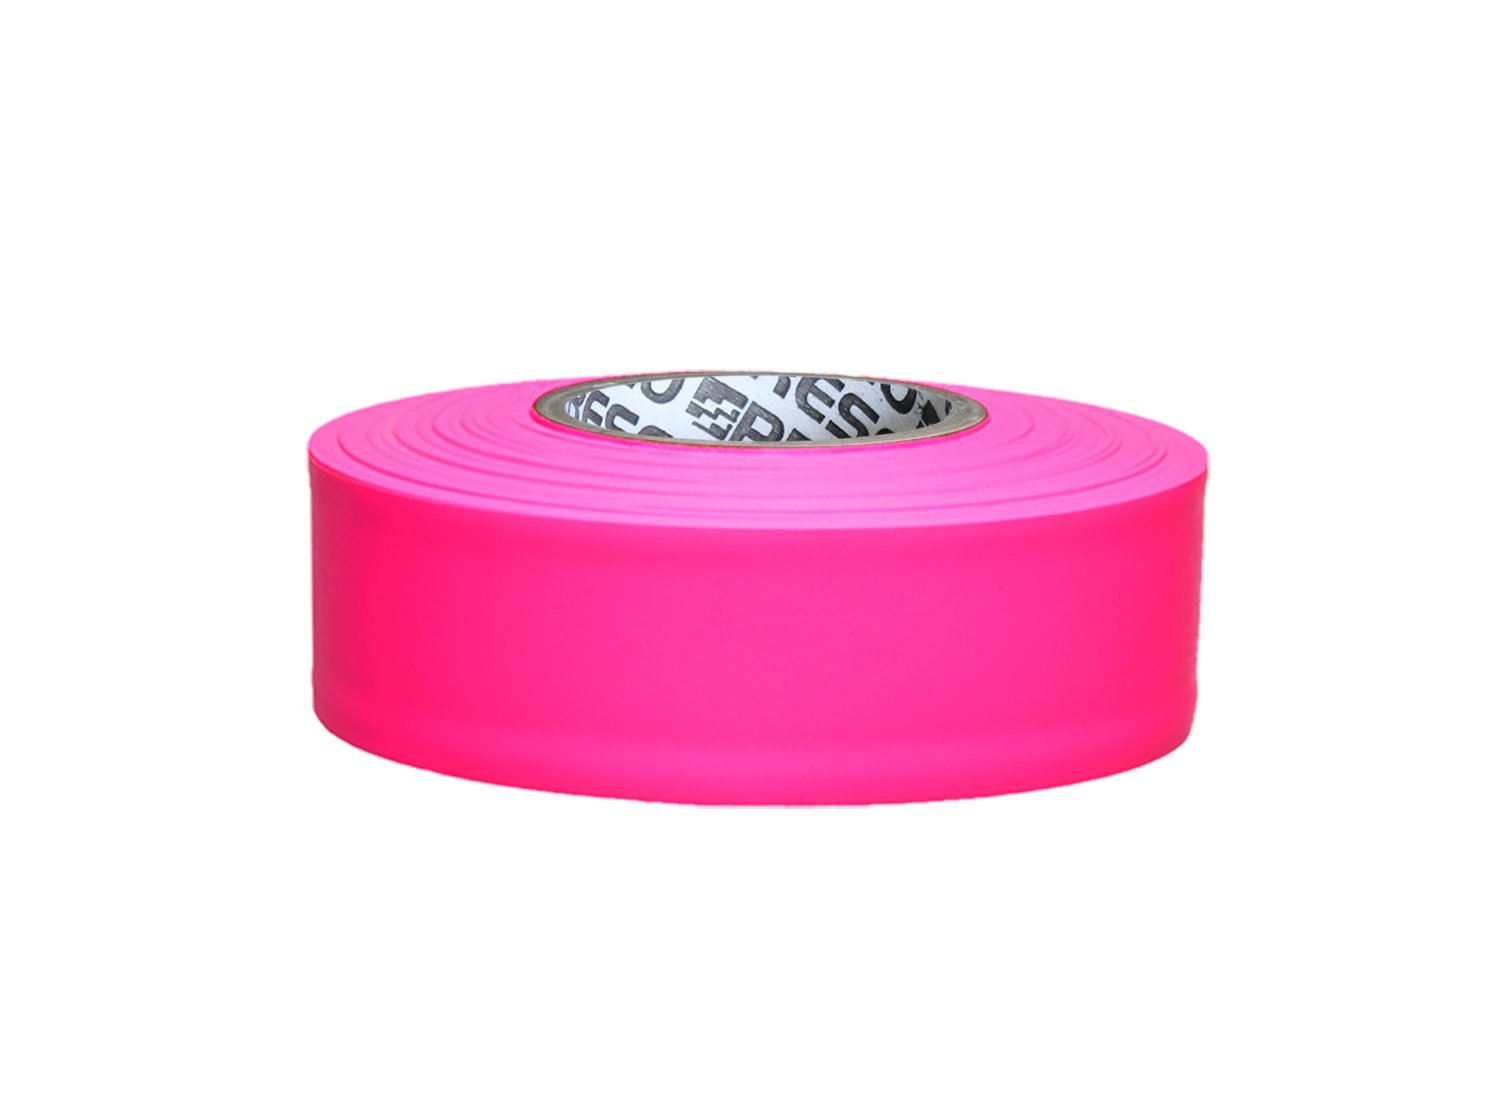 Presco ARPG 1-3/16'' x 150' Arctic Pink Glo PVC Flagging Tape, 3.75'' Height, 1.18'' Wide, 3.75'' Length by Presco